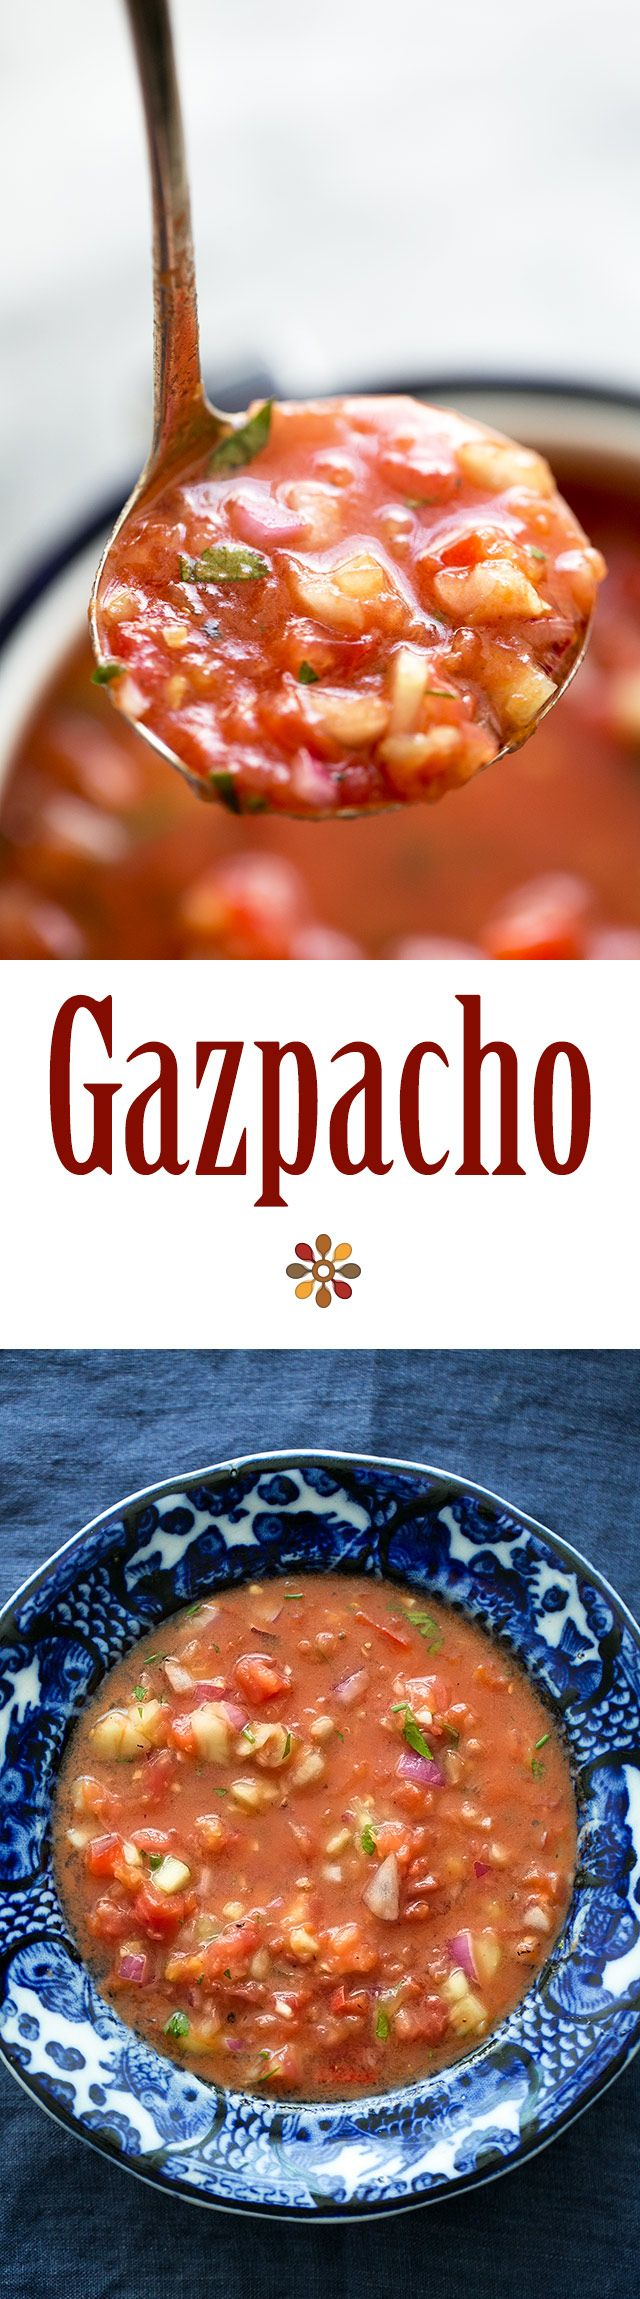 Gazpacho ~ California version of the classic Spanish gazpacho recipe. Chilled soup made with ripe, uncooked tomatoes, cucumber, bell pepper, celery, onion, and seasoned with fresh herbs, Tabasco sauce and Worcestershire sauce. ~ SimplyRecipes.com